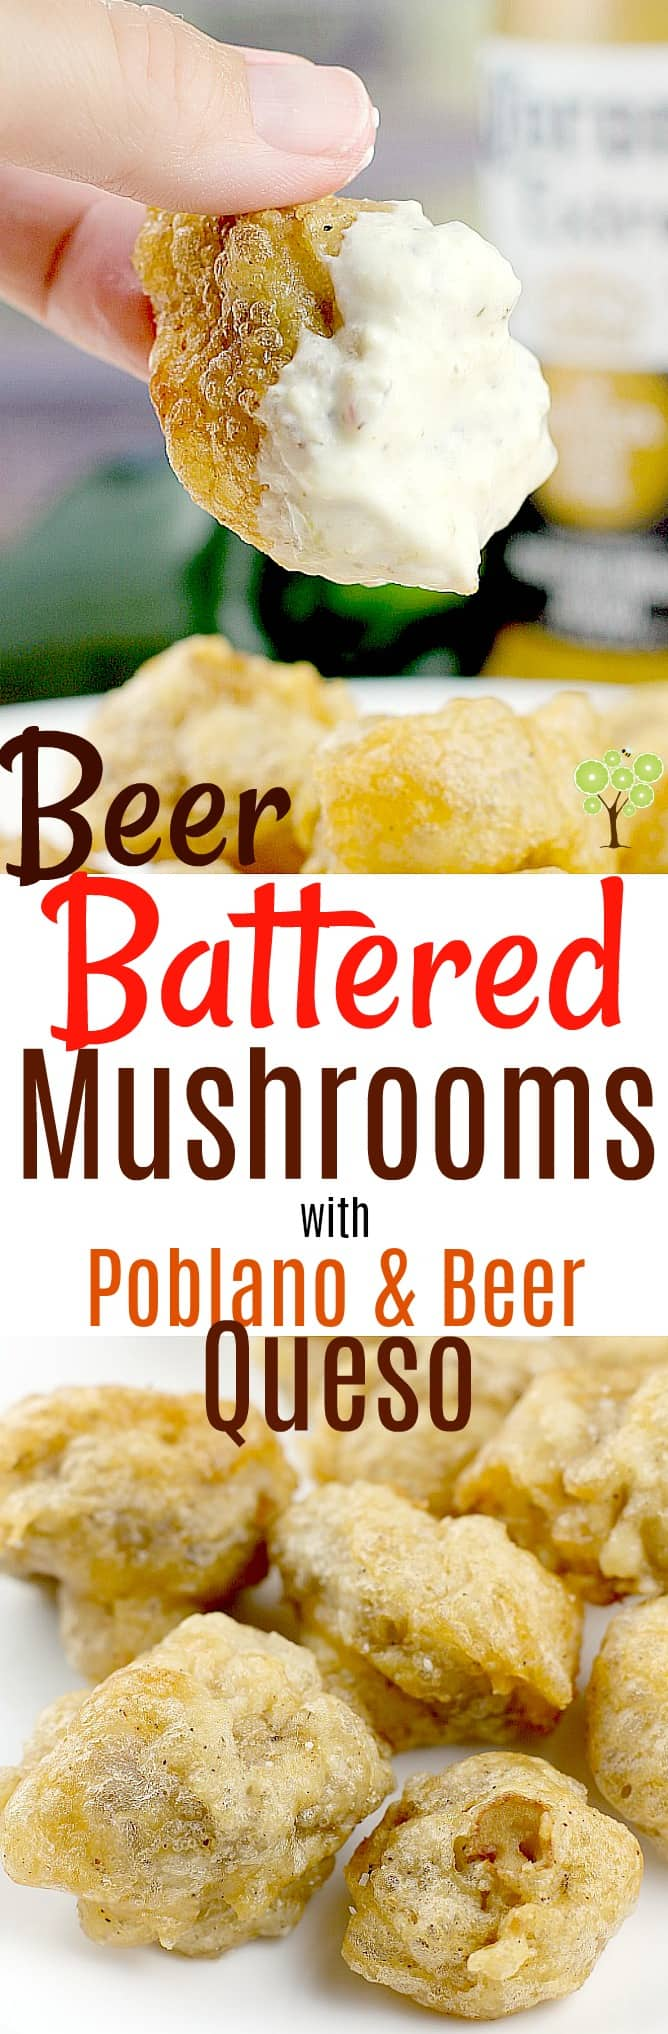 Msg 4 21+ Beer-Battered Mushrooms with Poblano & Beer Queso #SummertimeCerveza #ad @coronaextrausa